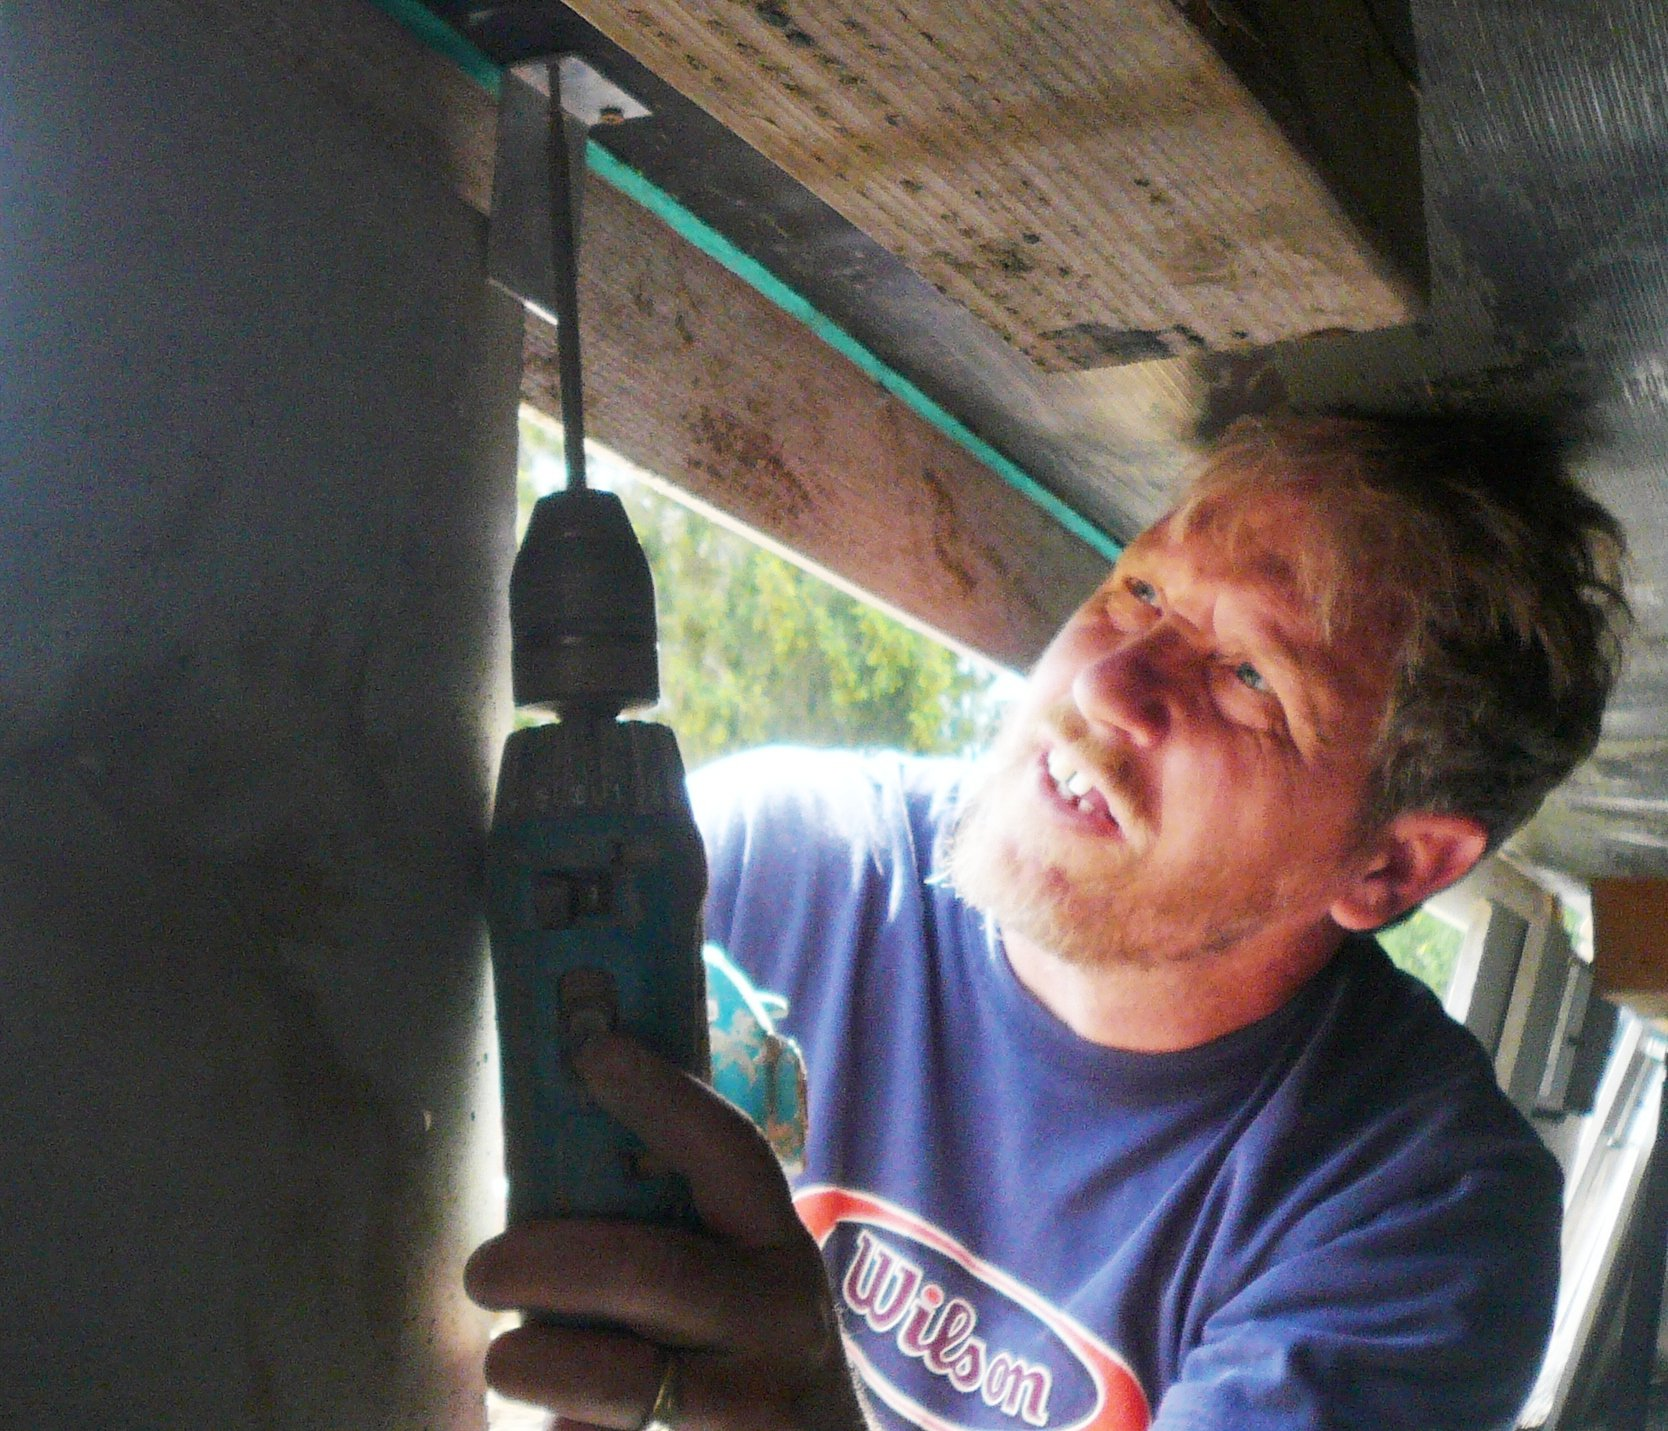 Mobile Home Re-Leveling Service